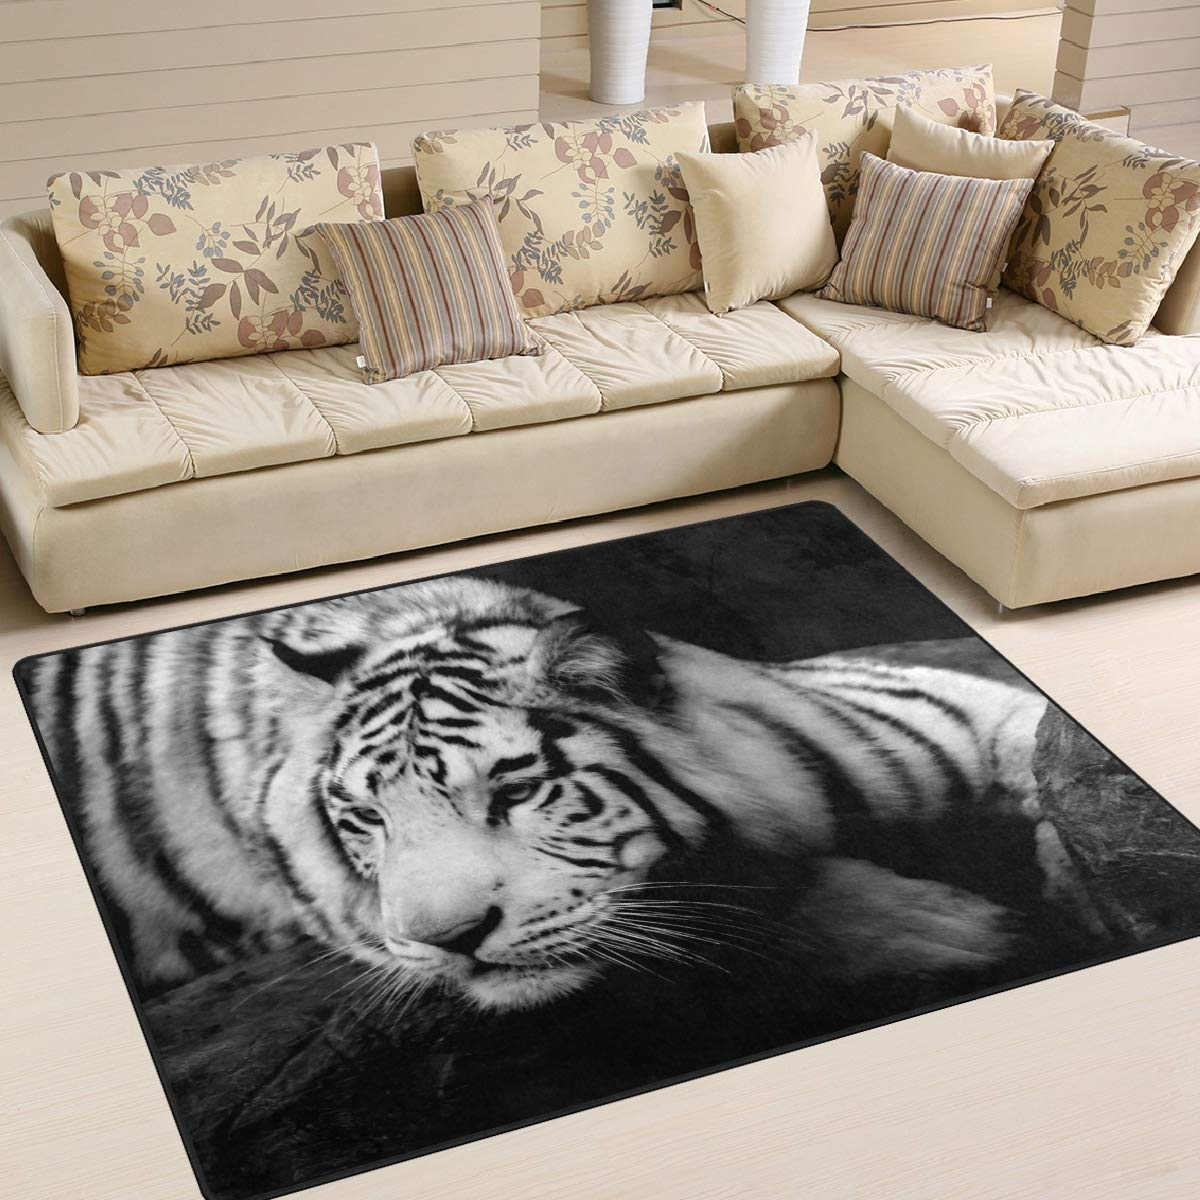 ALAZA Tiger on Ledge Area Rug Rugs for Living Room Bedroom 5'3 x 4' g3107276p147c162s244